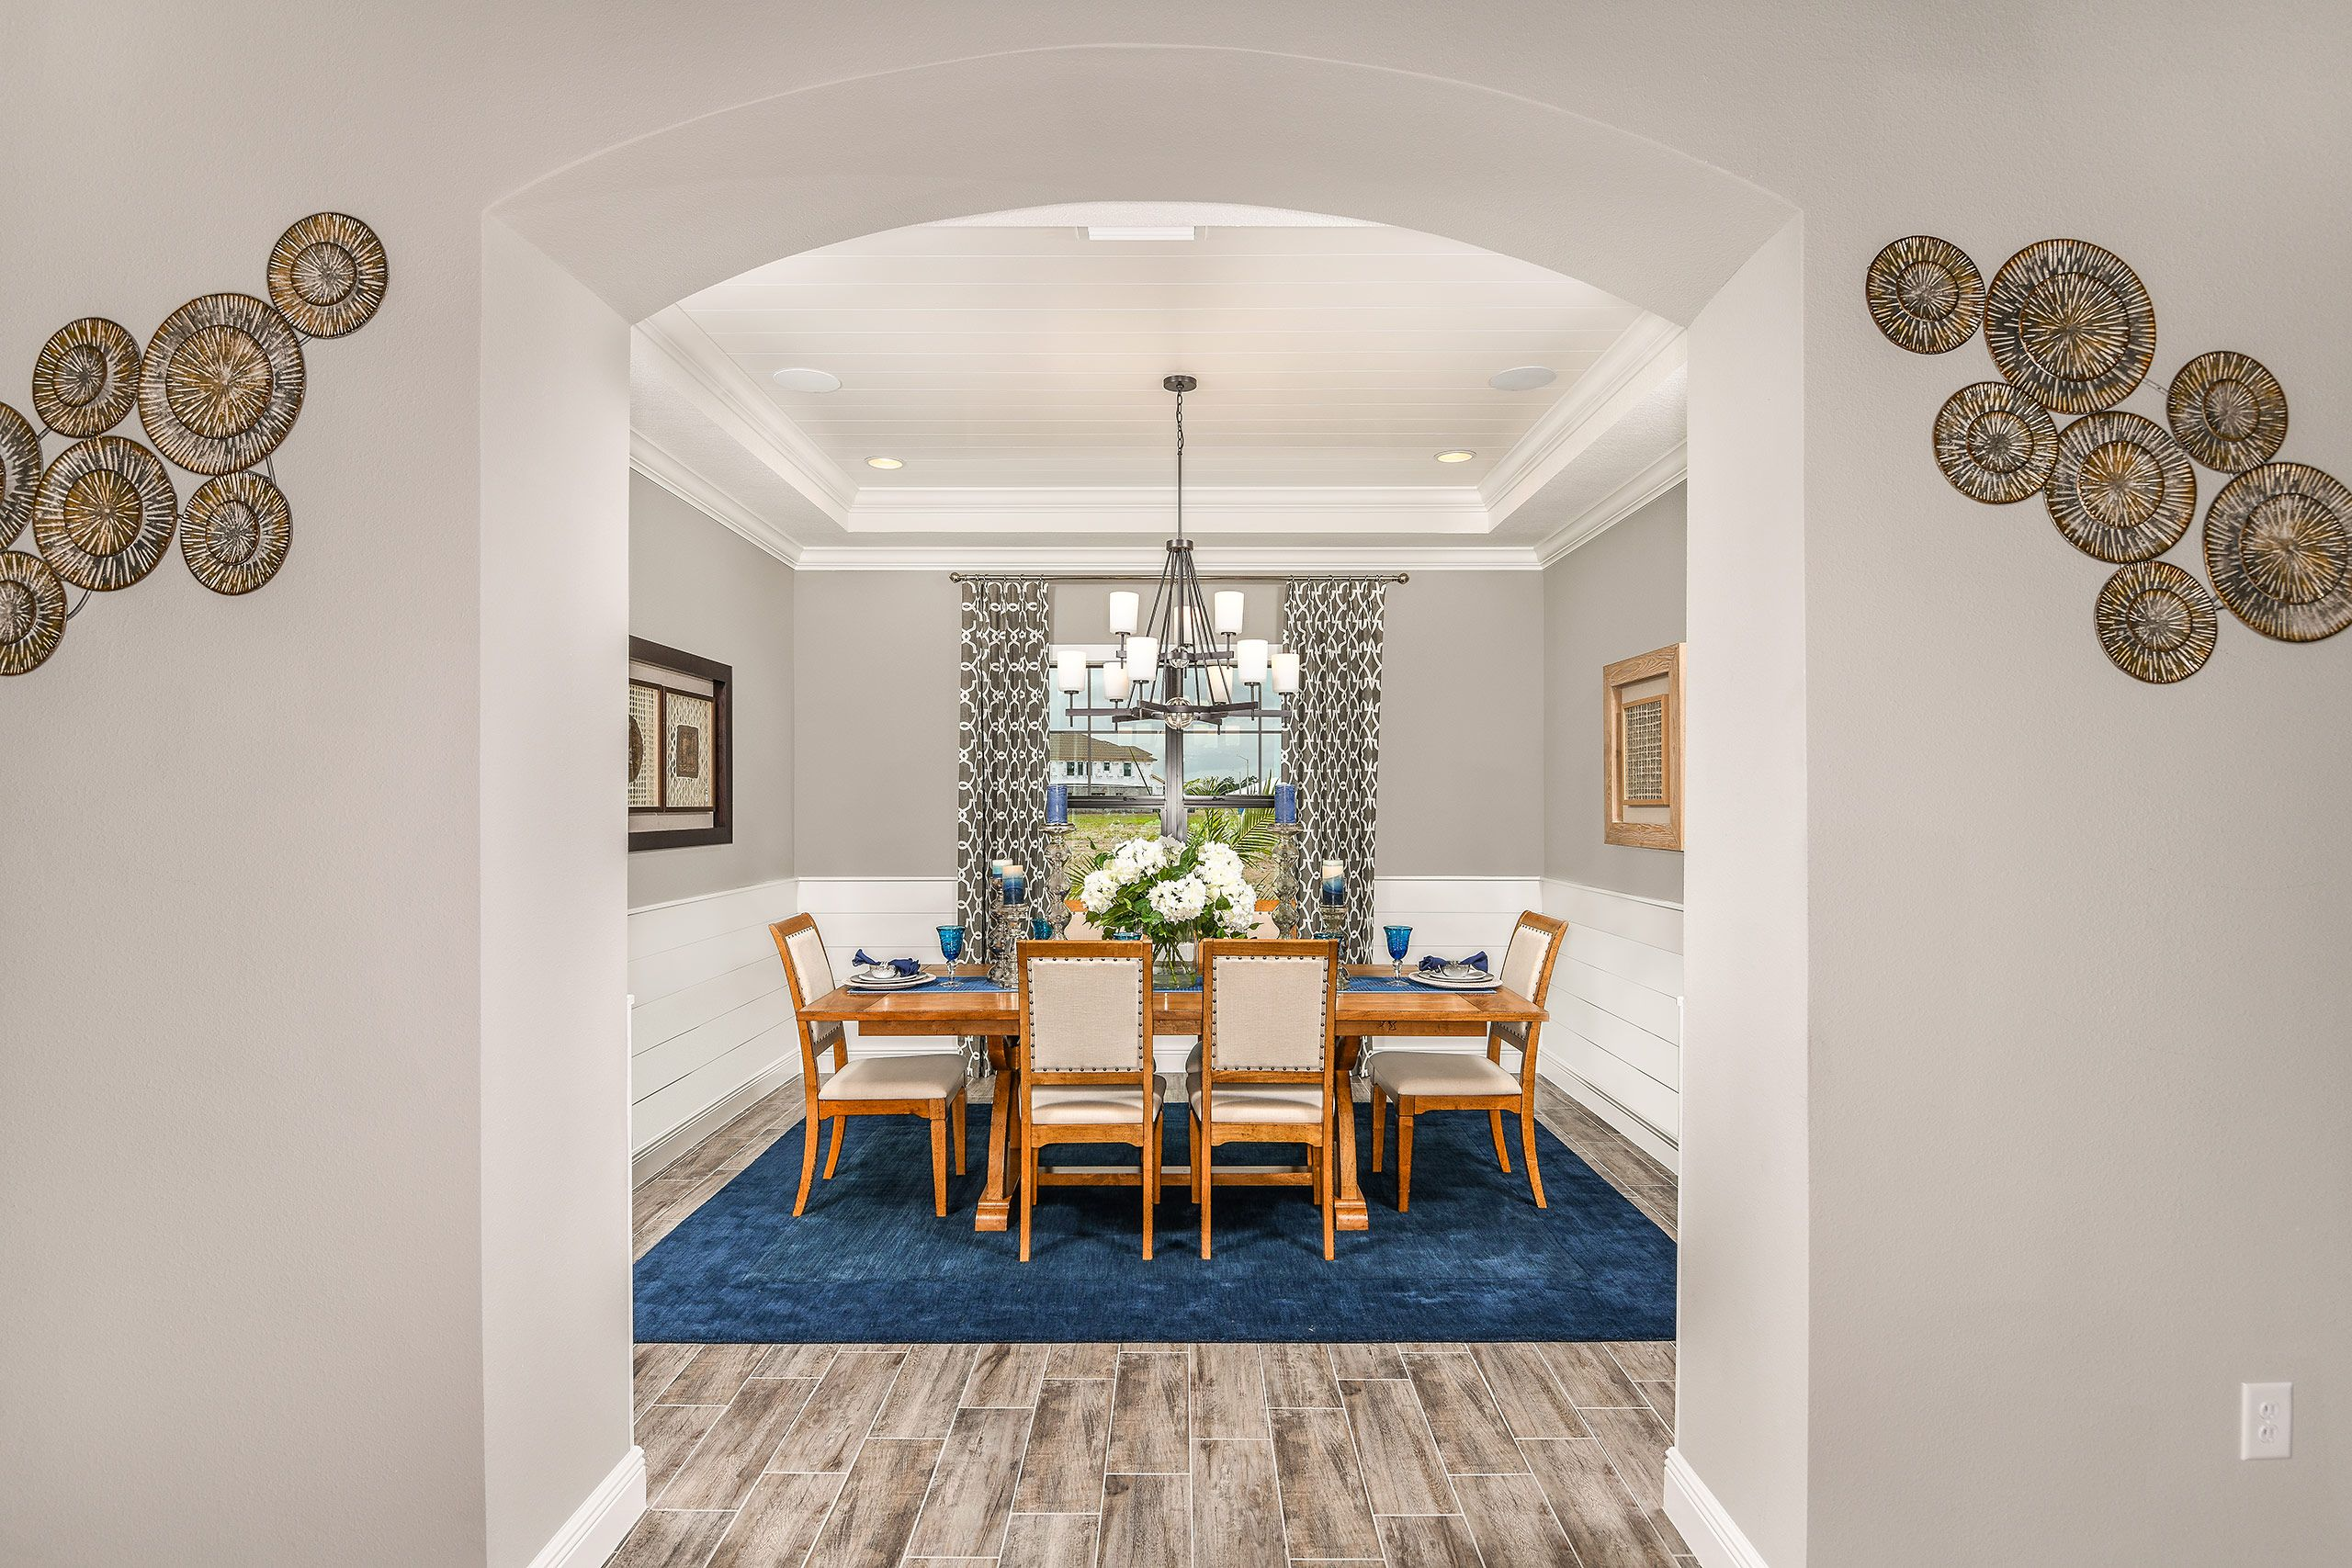 Living Area featured in the Madeira III By Homes by WestBay in Tampa-St. Petersburg, FL